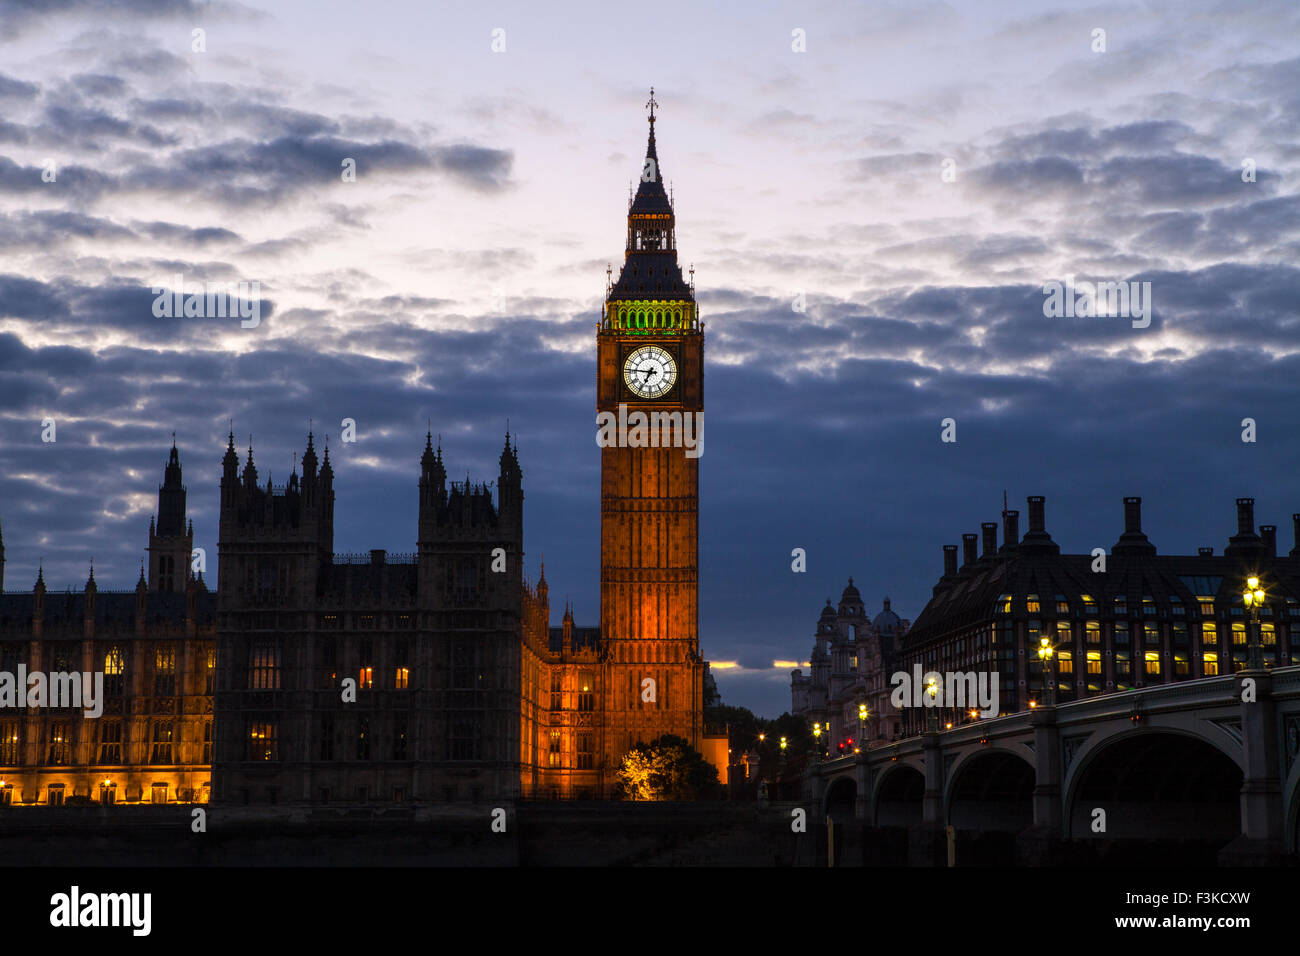 A view of the Houses of Parliament and Westminster Bridge in London. - Stock Image